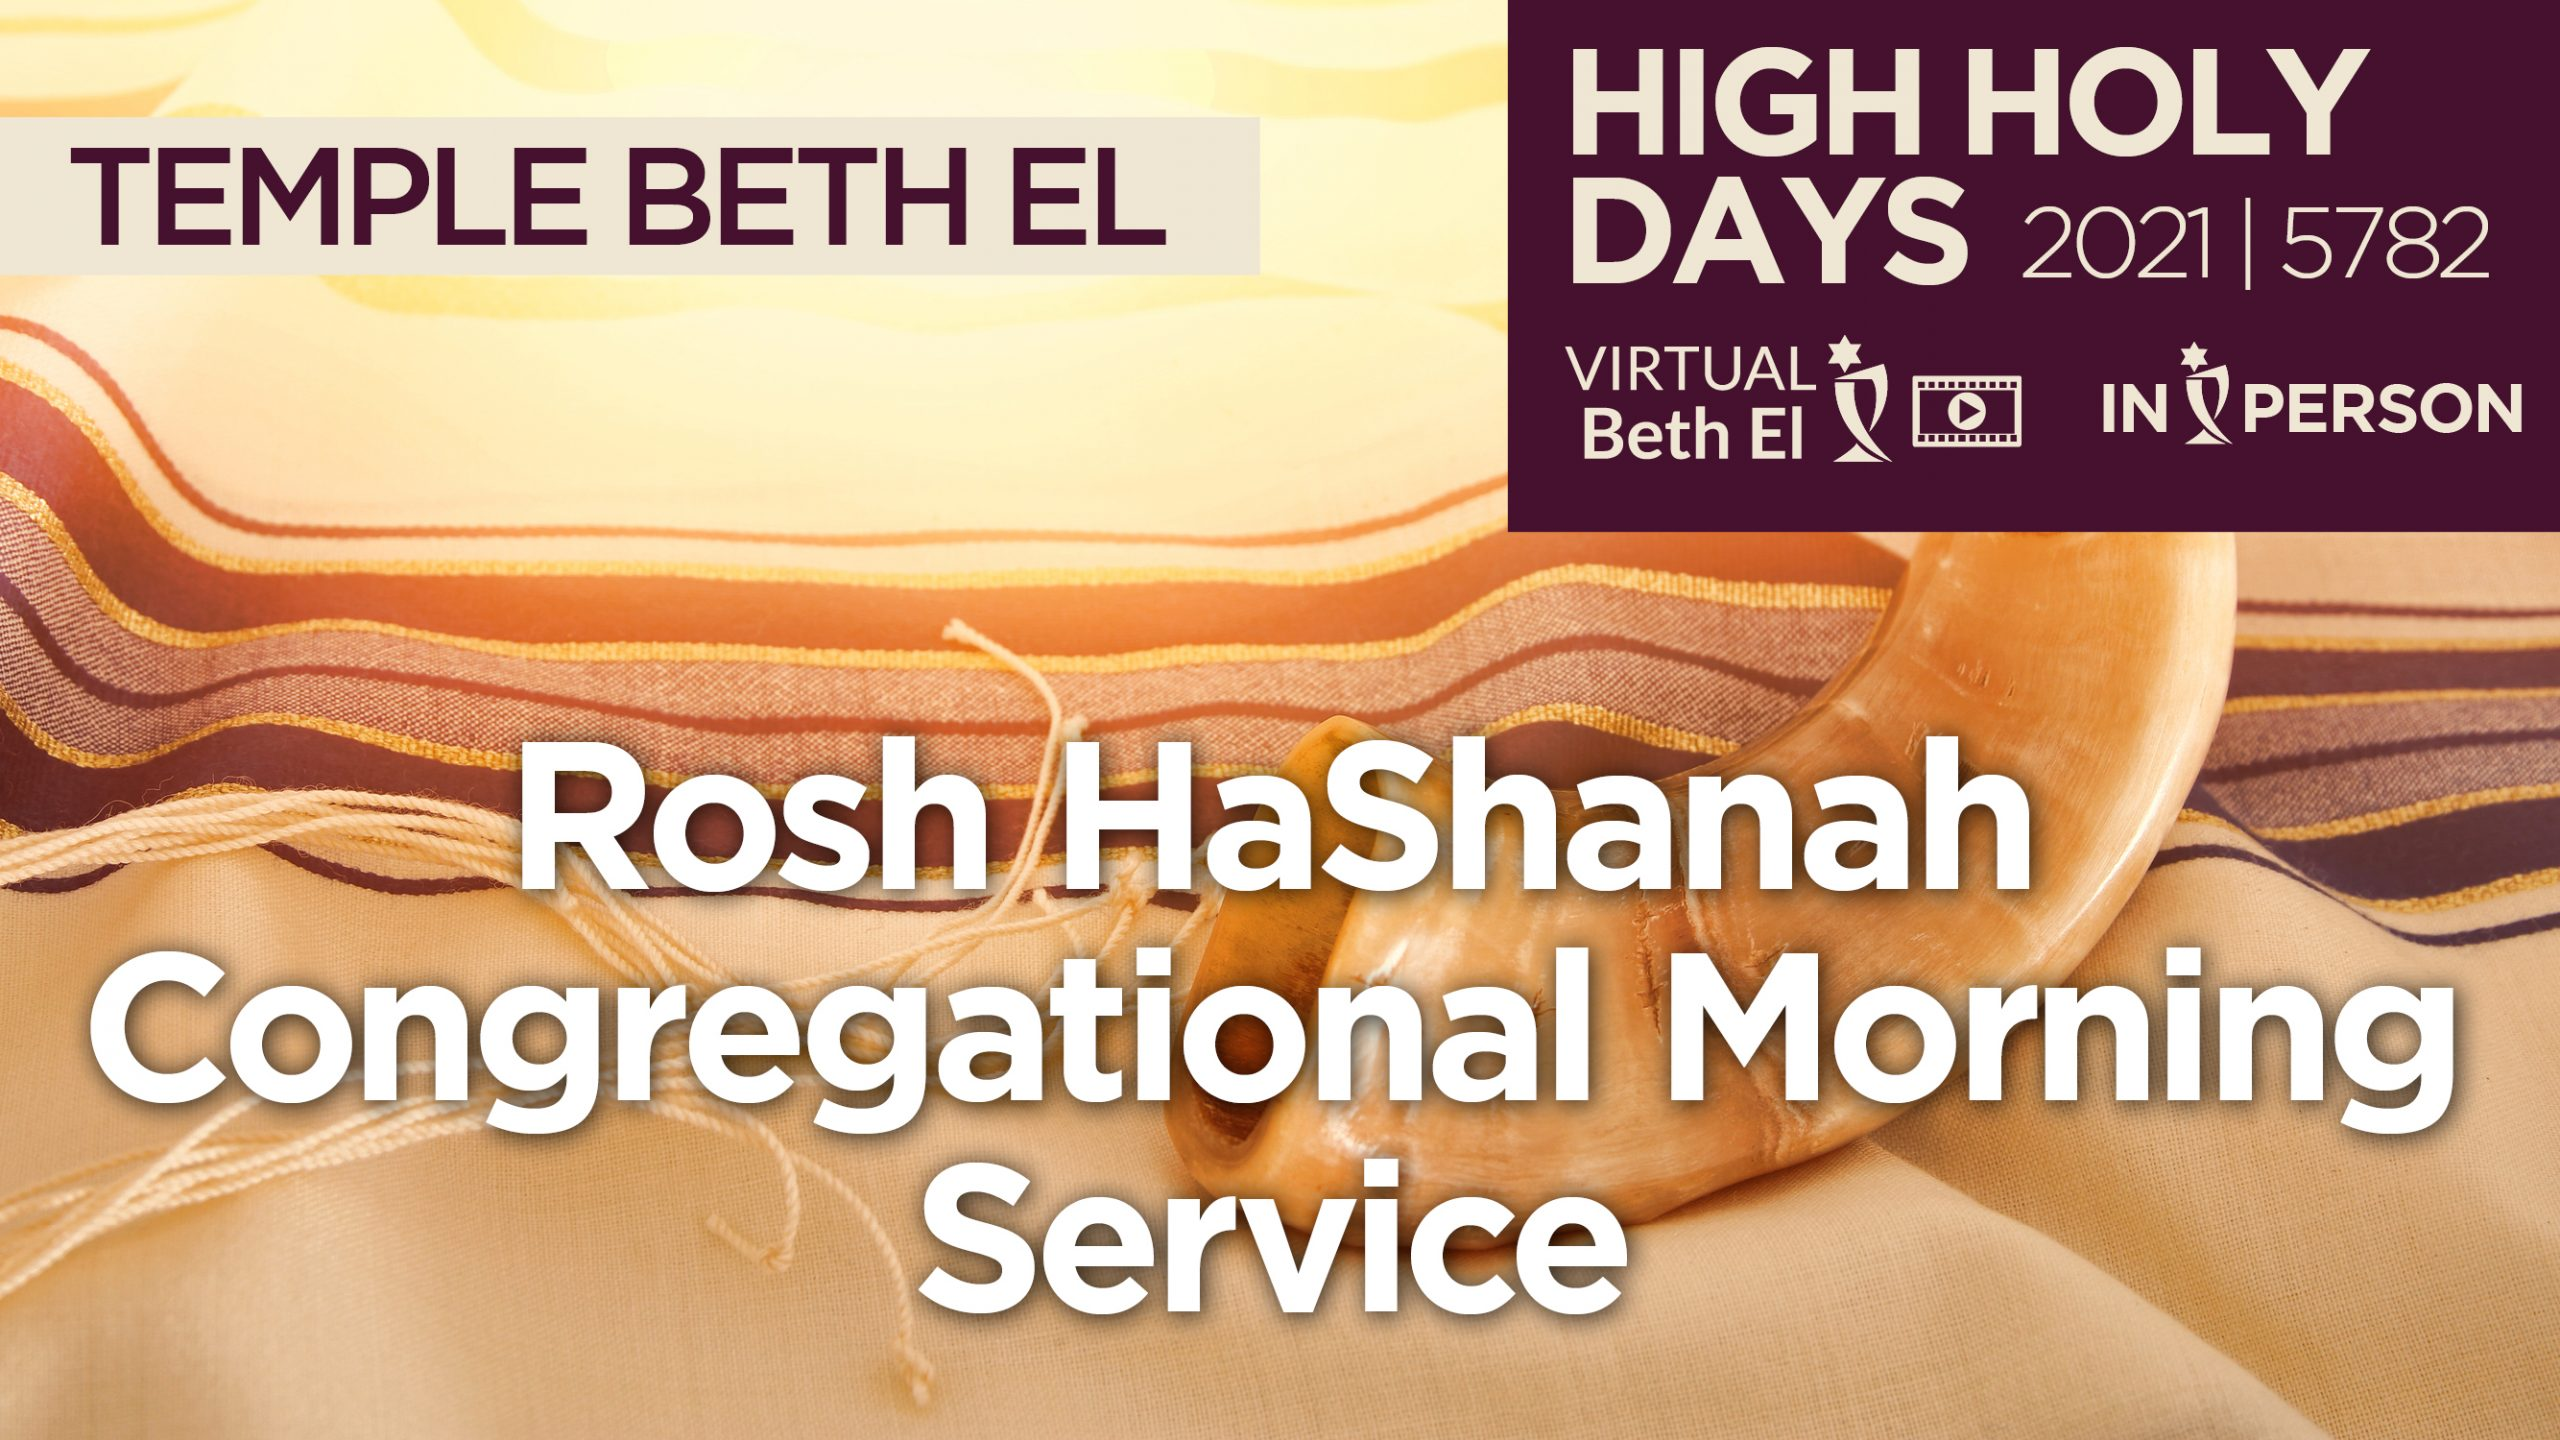 Rosh HaShanah Services Announcement Graphic for 2021 5782